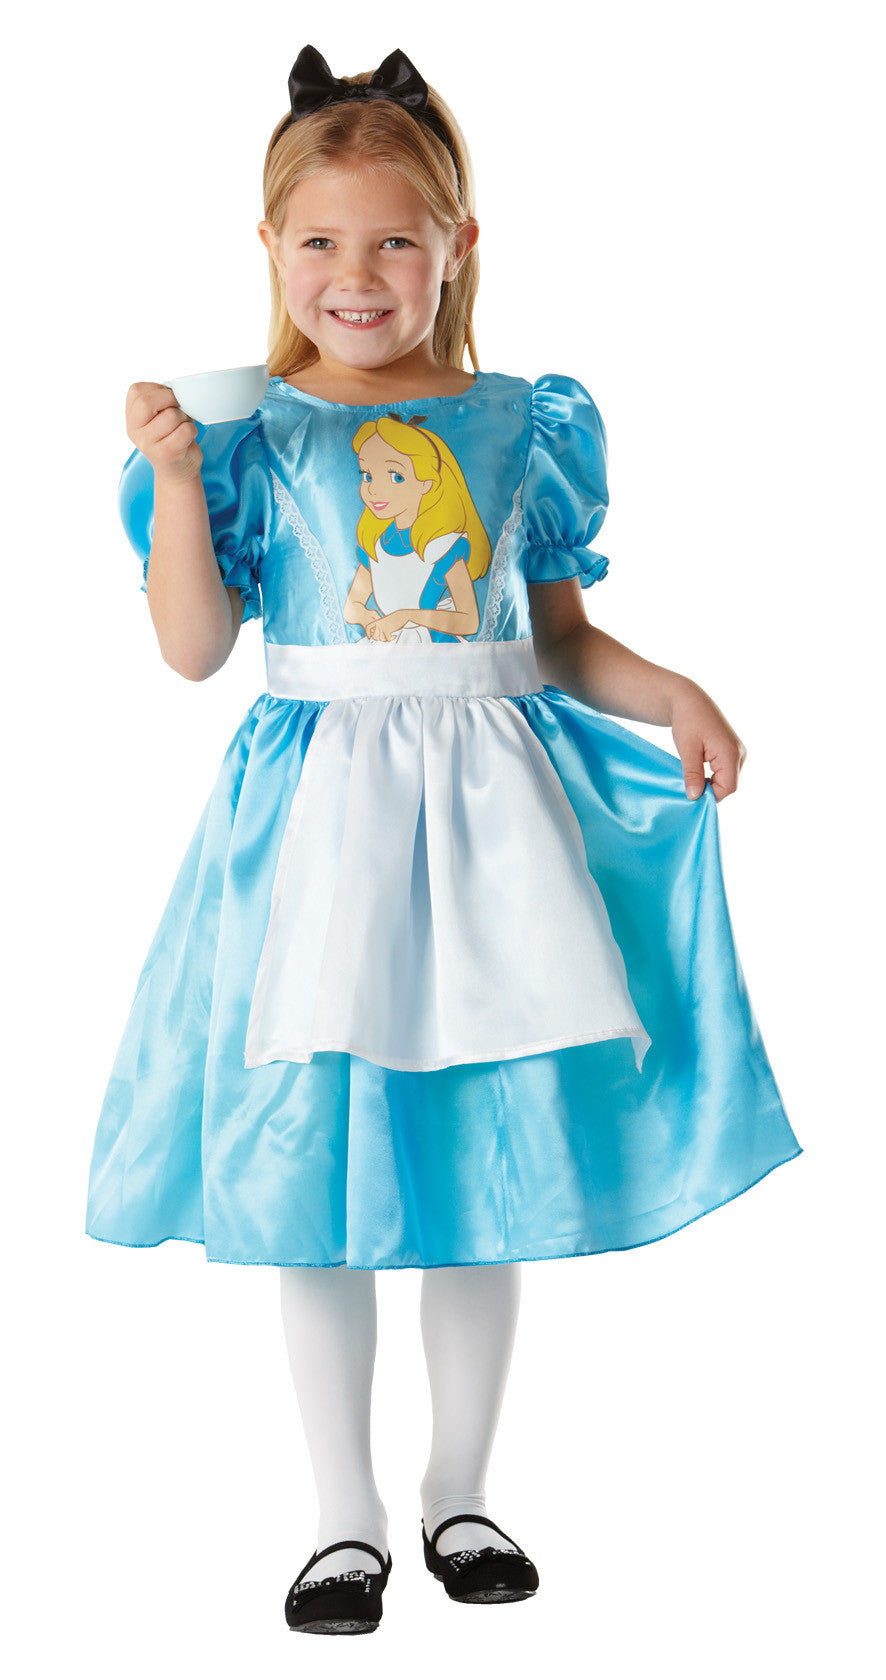 ALICE IN WONDERLAND DISNEY COSTUME, CHILD - SIZE M